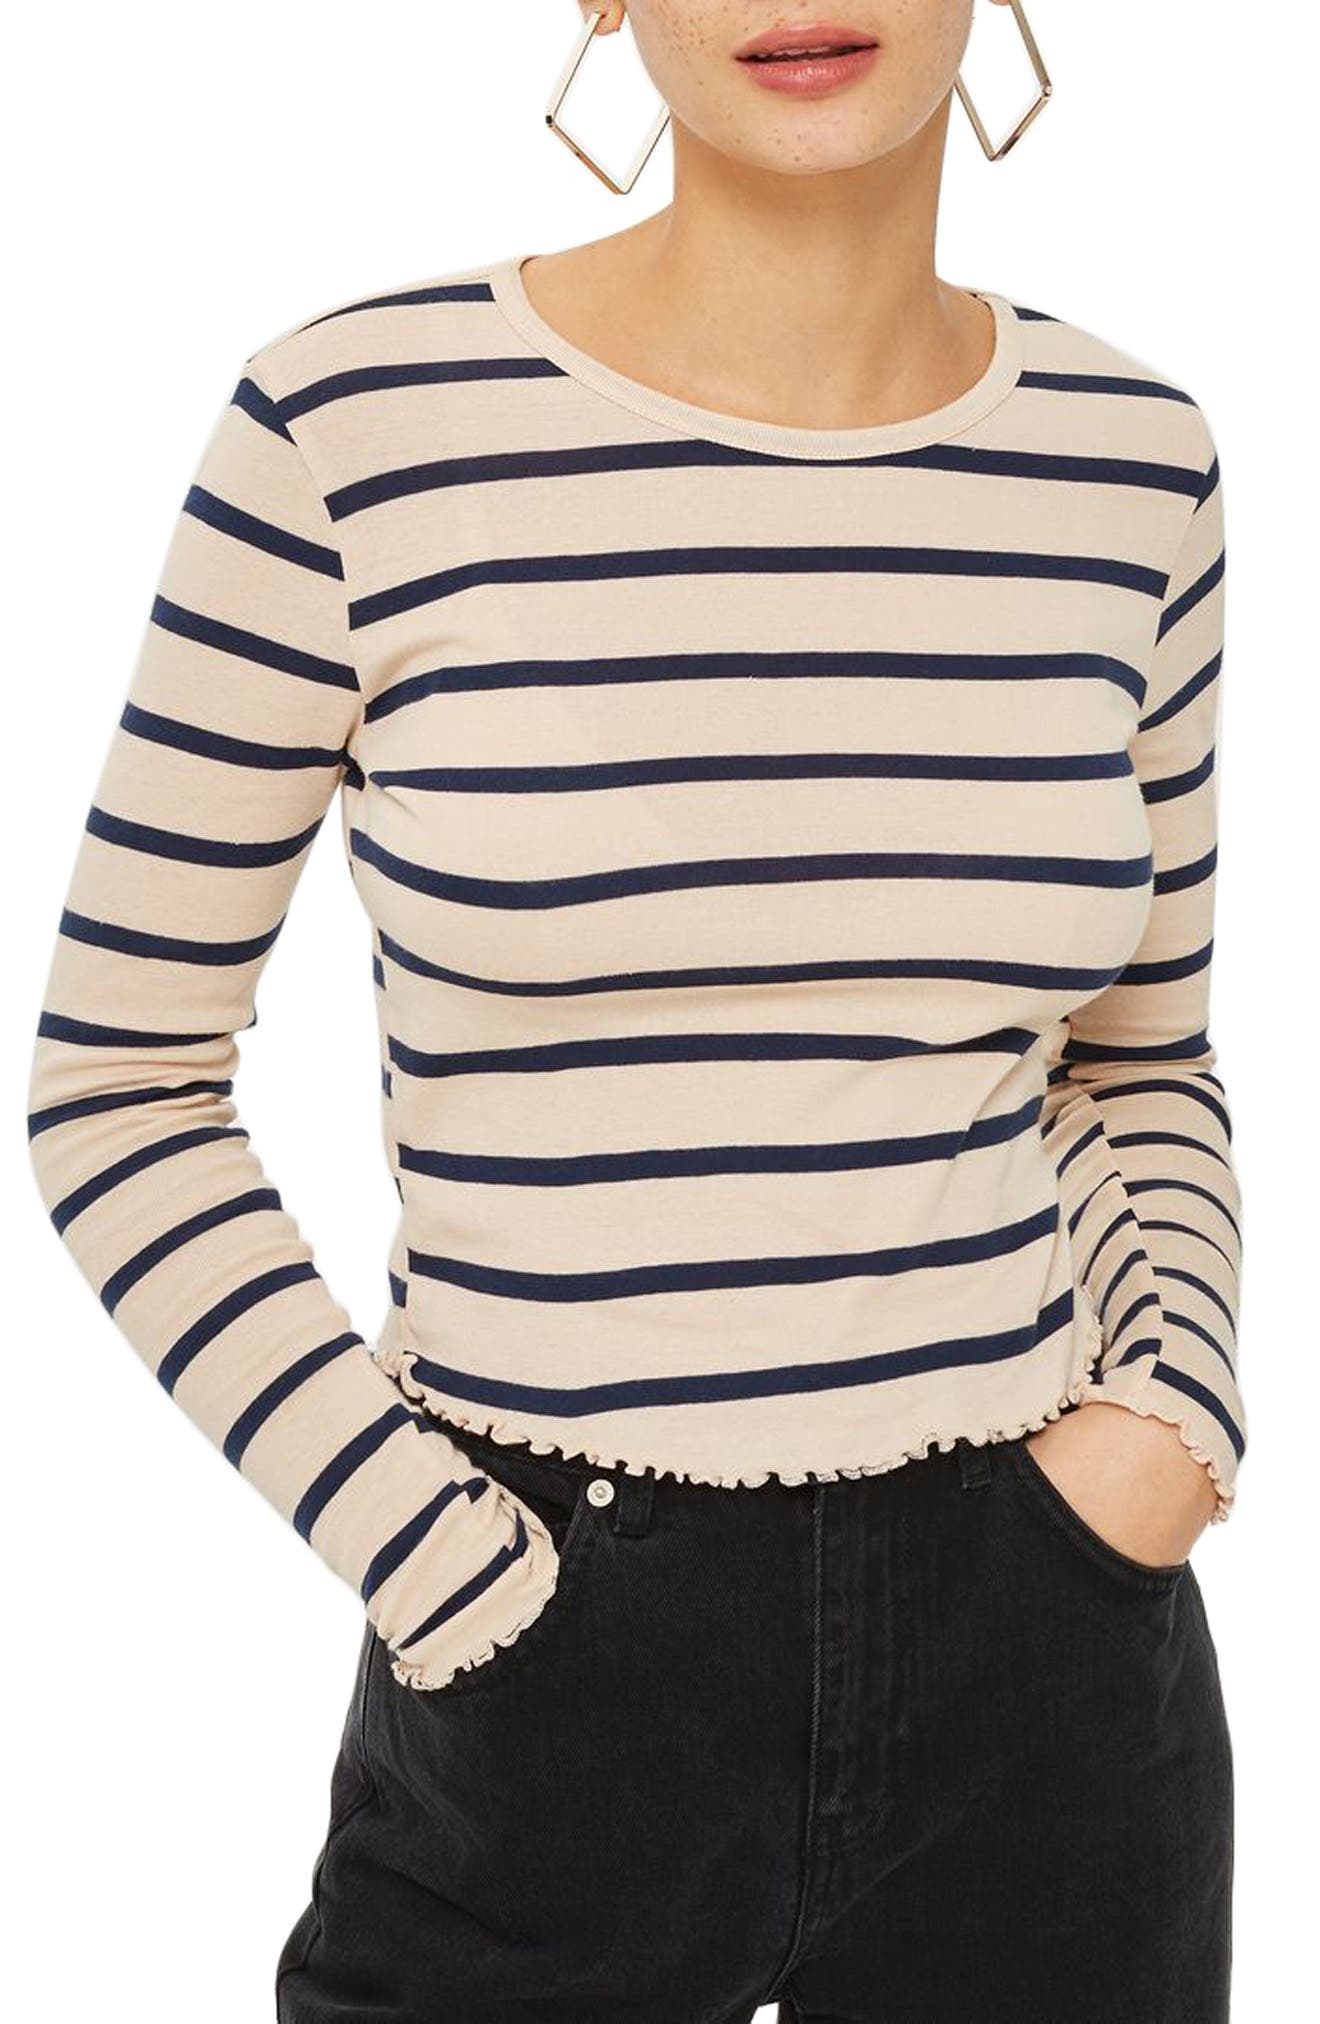 Topshop Stripe Lettuce Hem Crop Top (Regular & Petite)